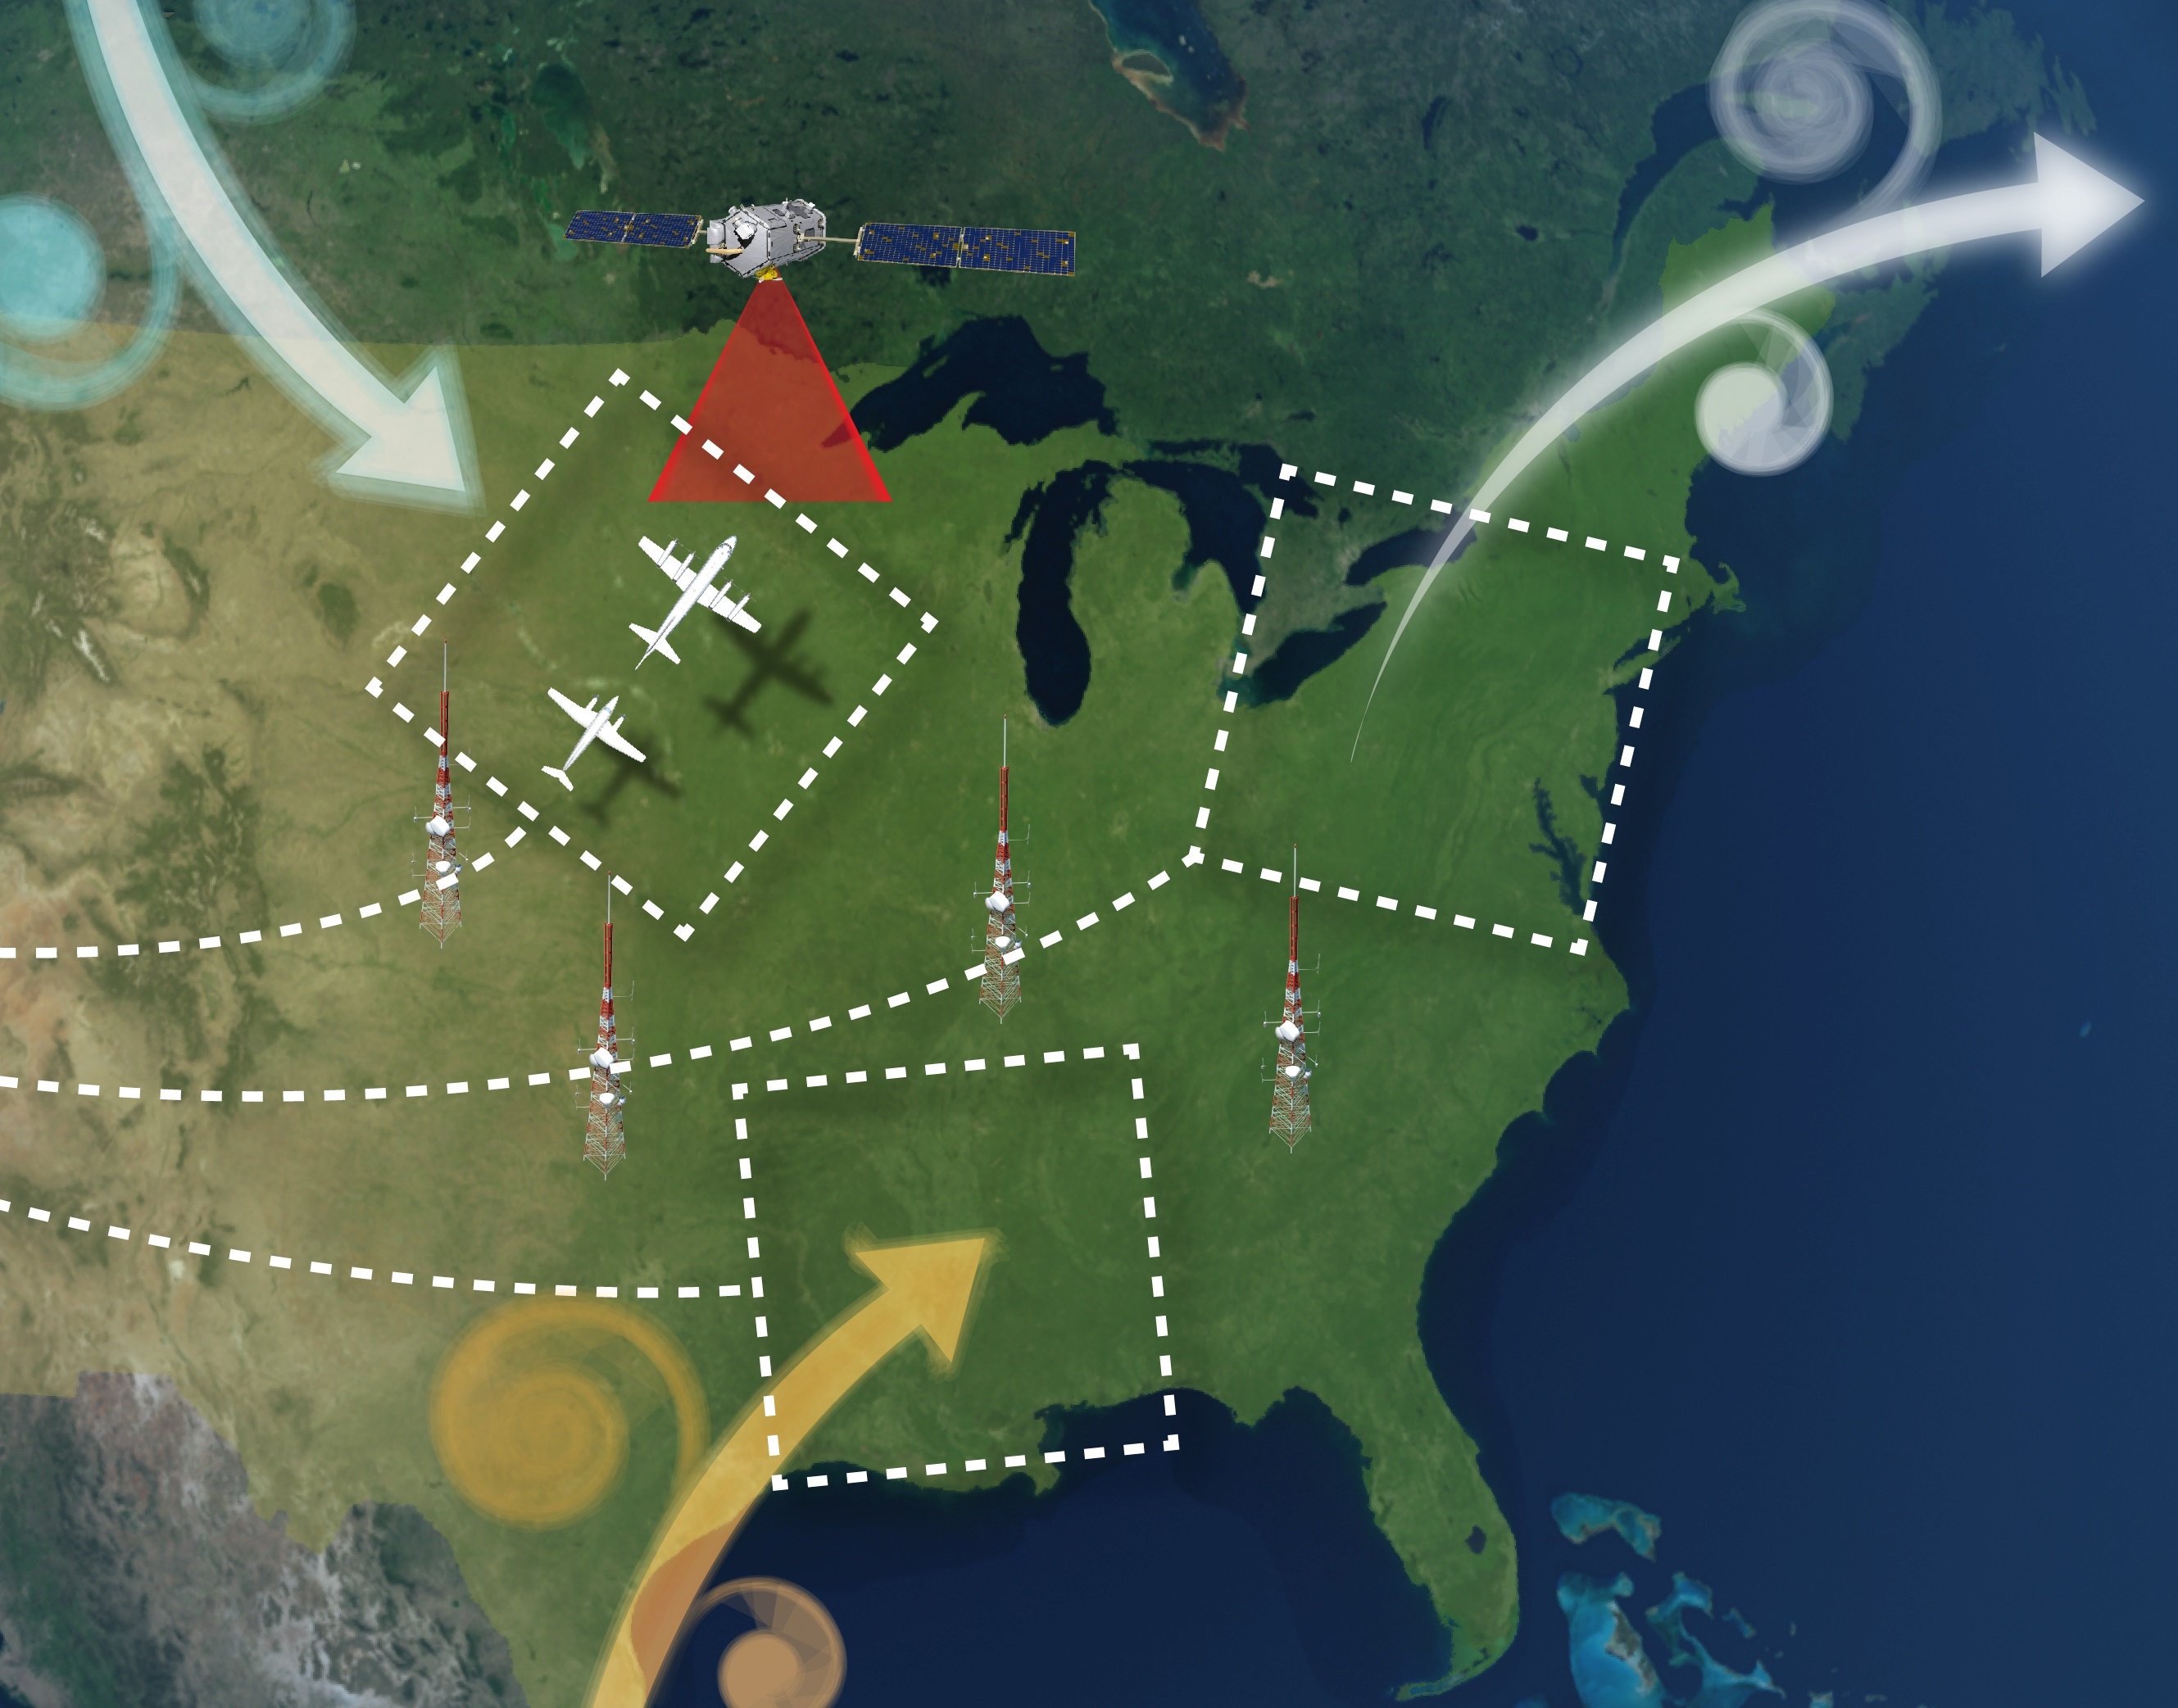 NASA Flights To Track Greenhouse Gases Across Eastern US NASA - Earth map show airplane travell from us to austrialia